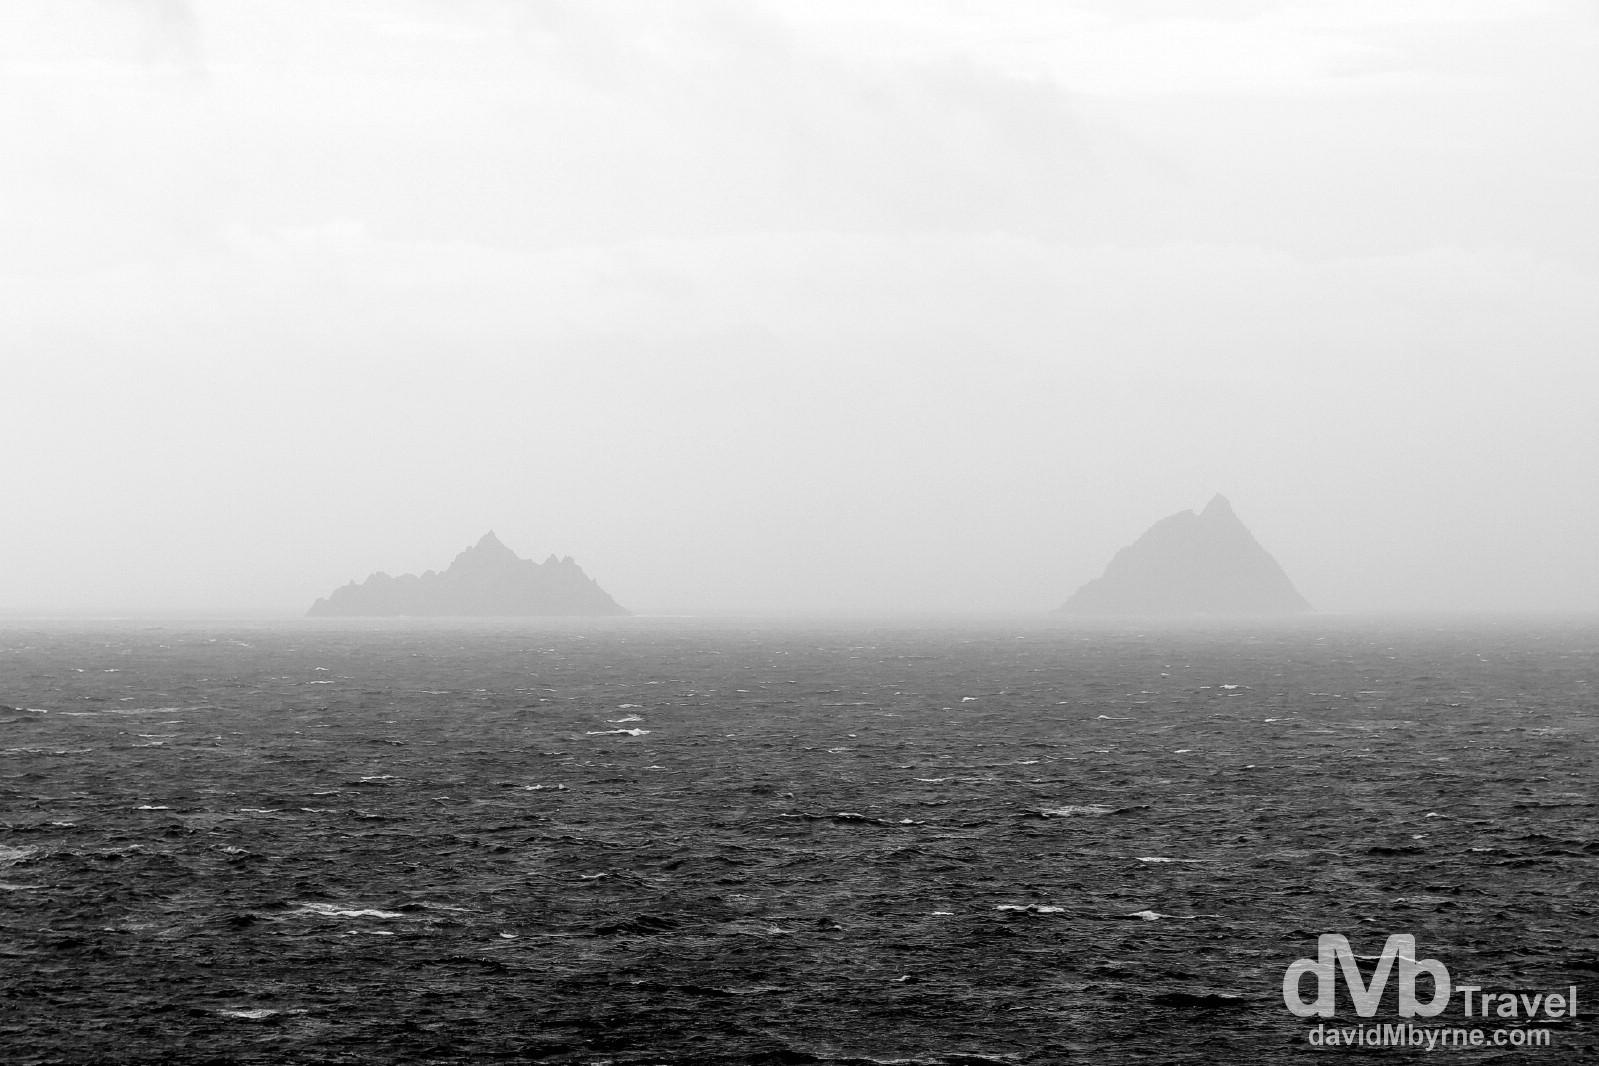 The Skellig Islands as seen from Bray Head car park on Valencia Island, Co. Kerry, Ireland. August 28, 2014.